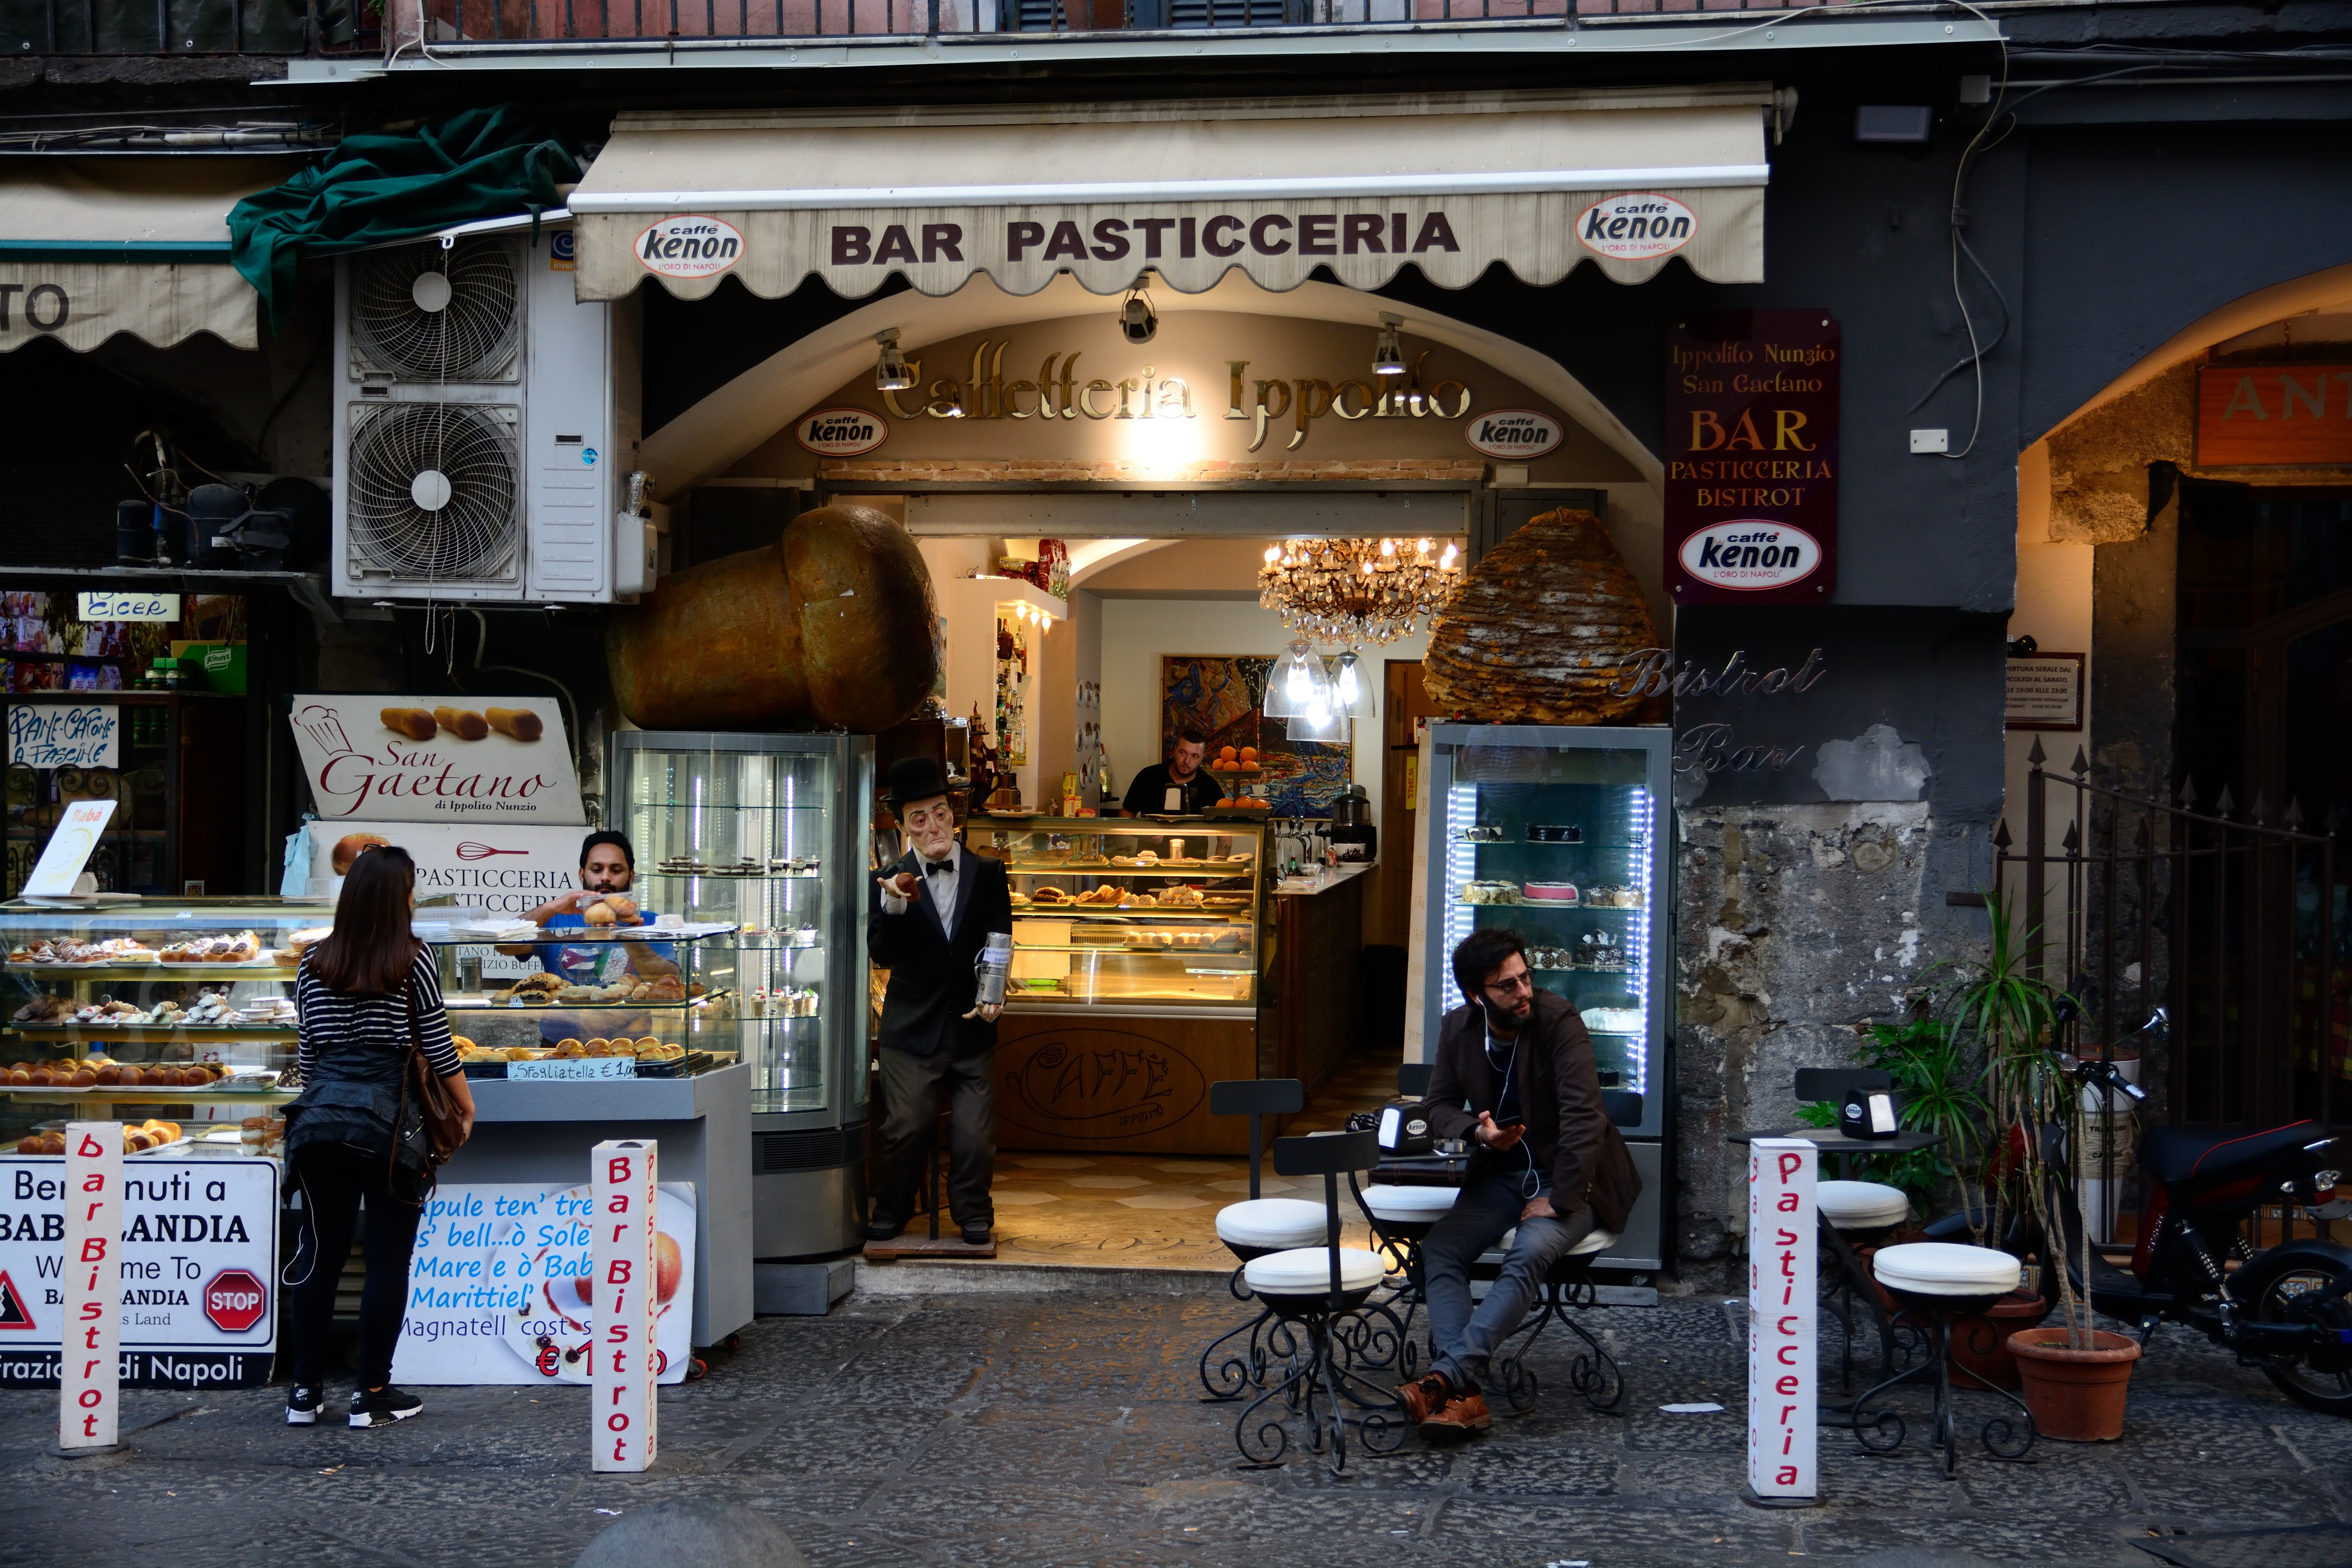 bar Pasticceria with people dining